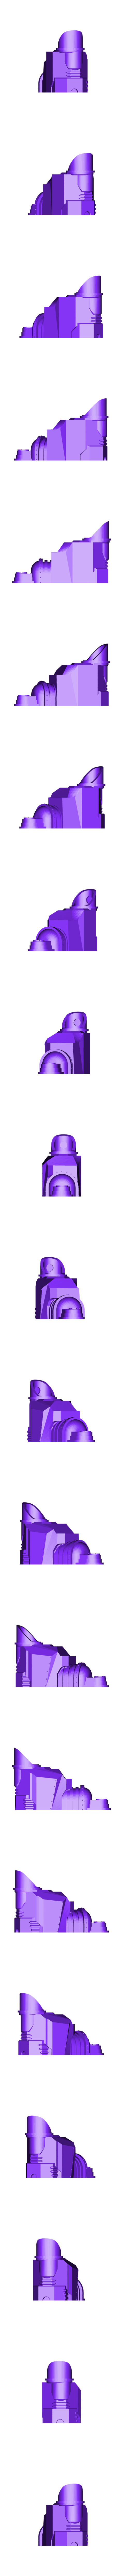 1-2Chest.stl Download free STL file The Iron Giant • 3D print model, leumas44